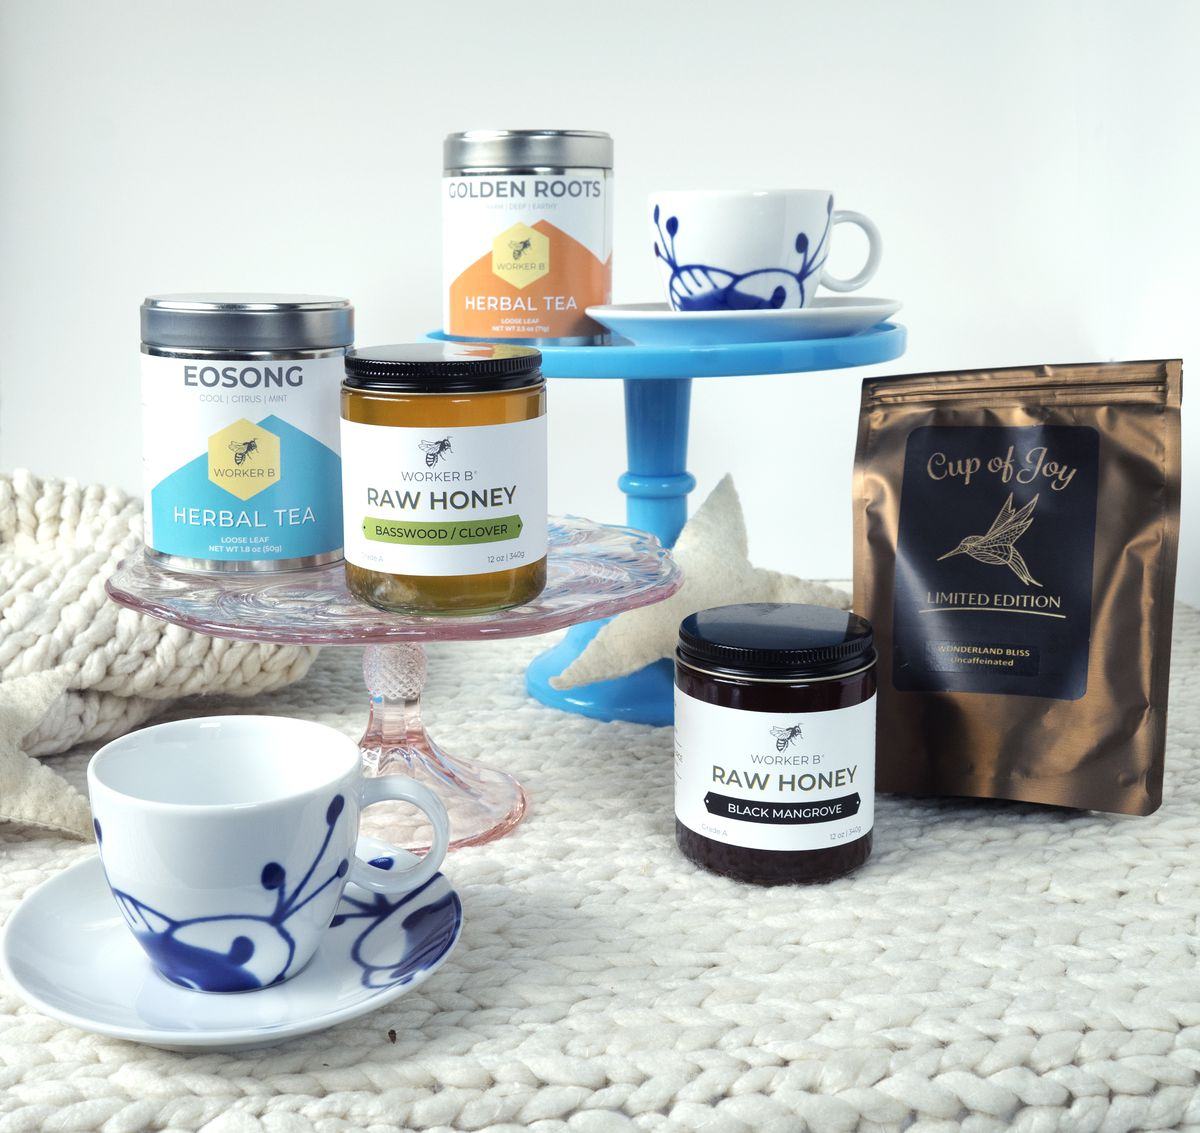 """On a white background, cakes stands hold tea and honey form Plan B, a dark shimmery bag contains another tea called """"Cup of Joy"""" and two tea cups are white with cobalt blue designs"""